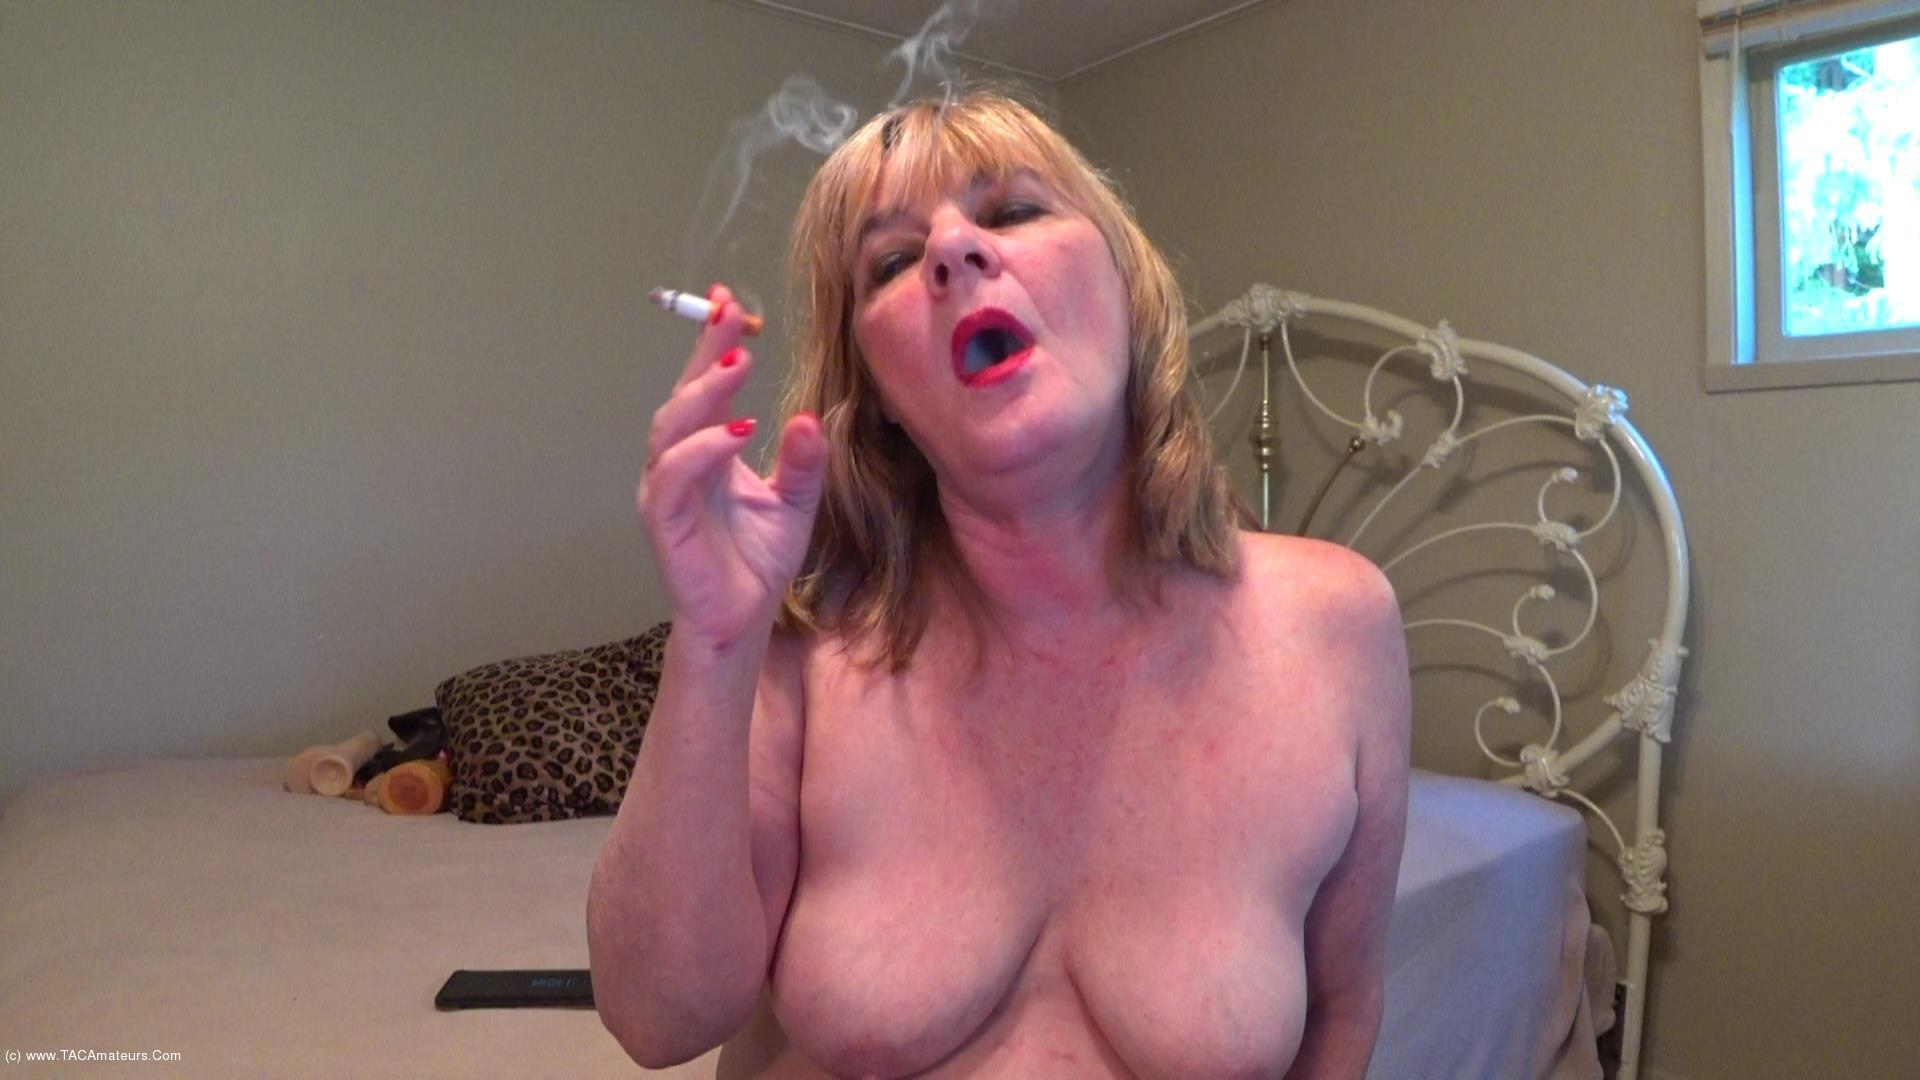 CougarBabeJolee - Titty Play & Smoking scene 3